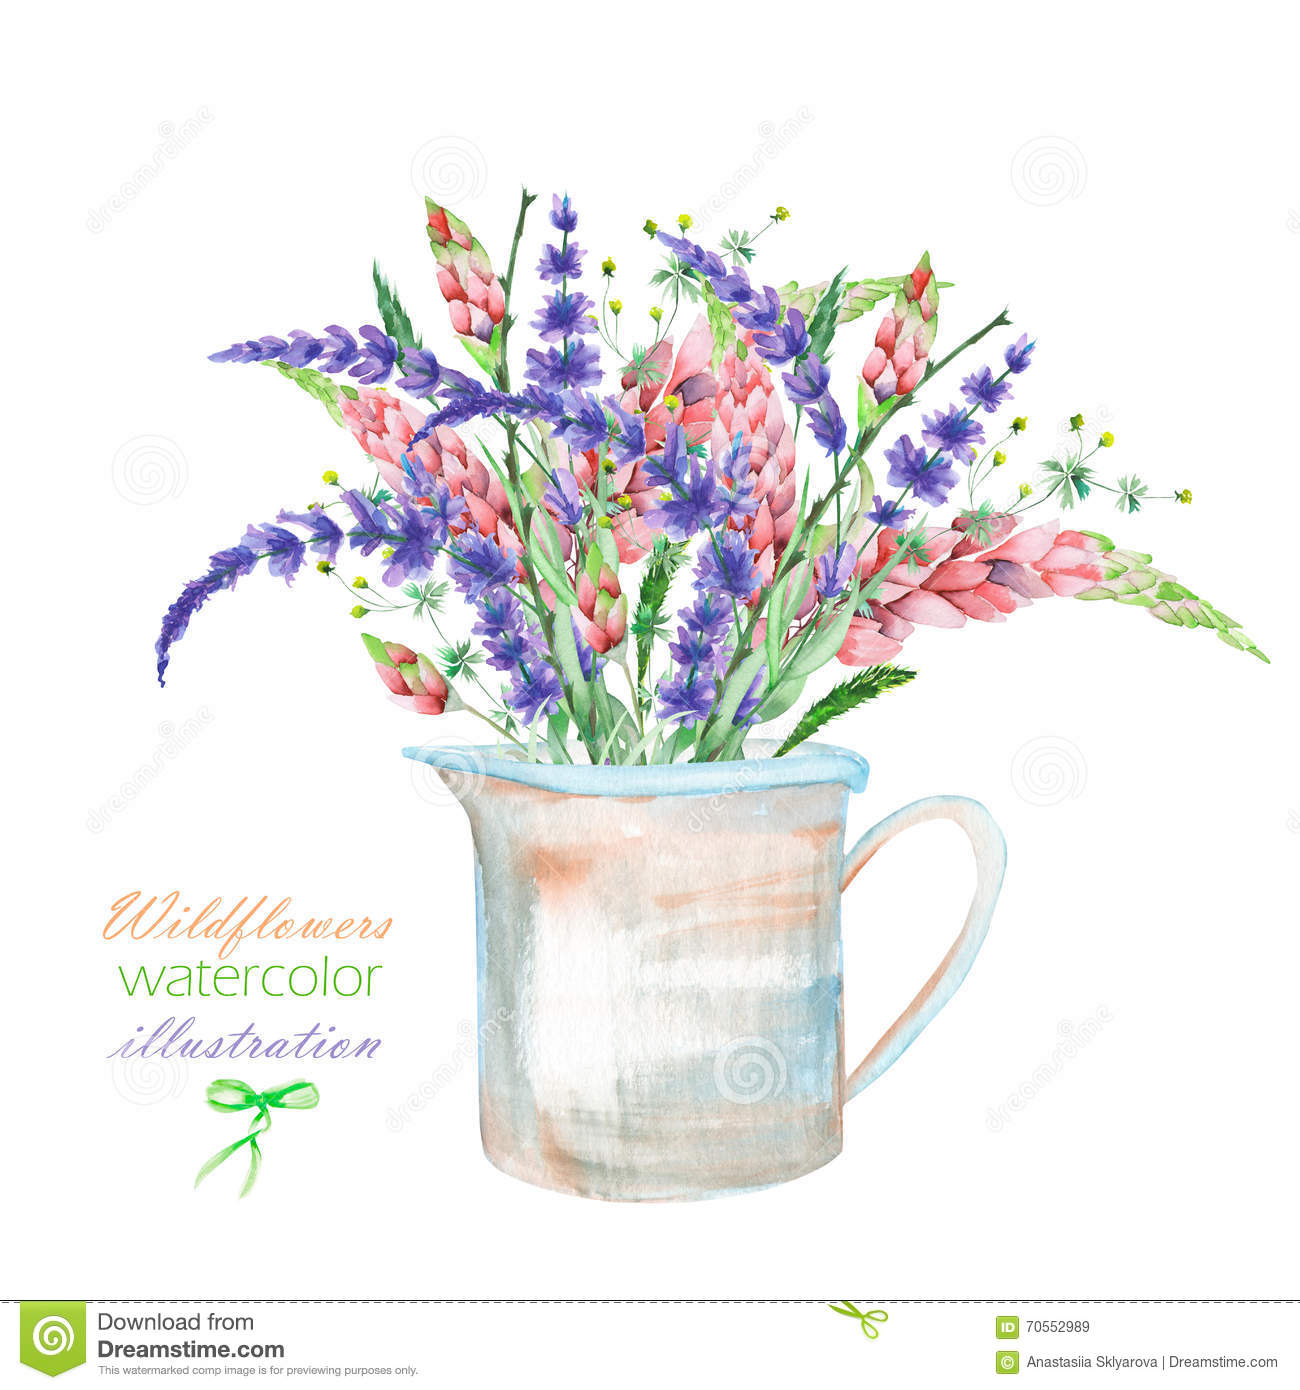 An illustration with a bouquet of the beautiful watercolor bright an illustration with a bouquet of the beautiful watercolor bright lupine flowers and lavender flowers in izmirmasajfo